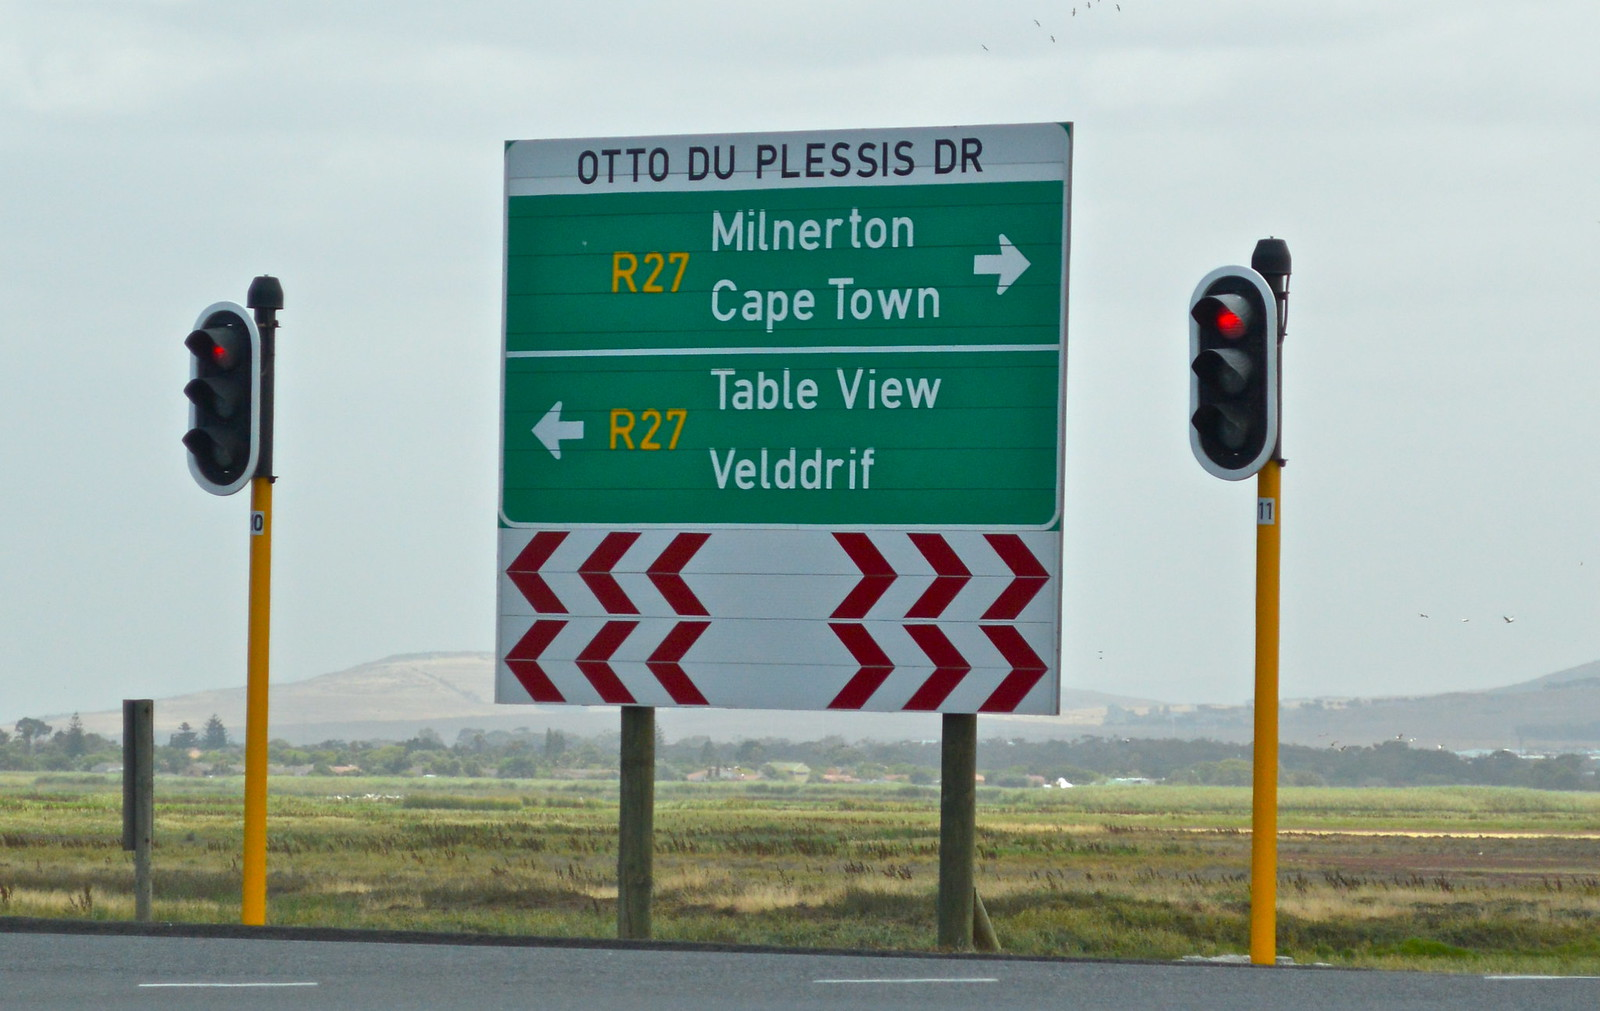 The long drive to Saldanha